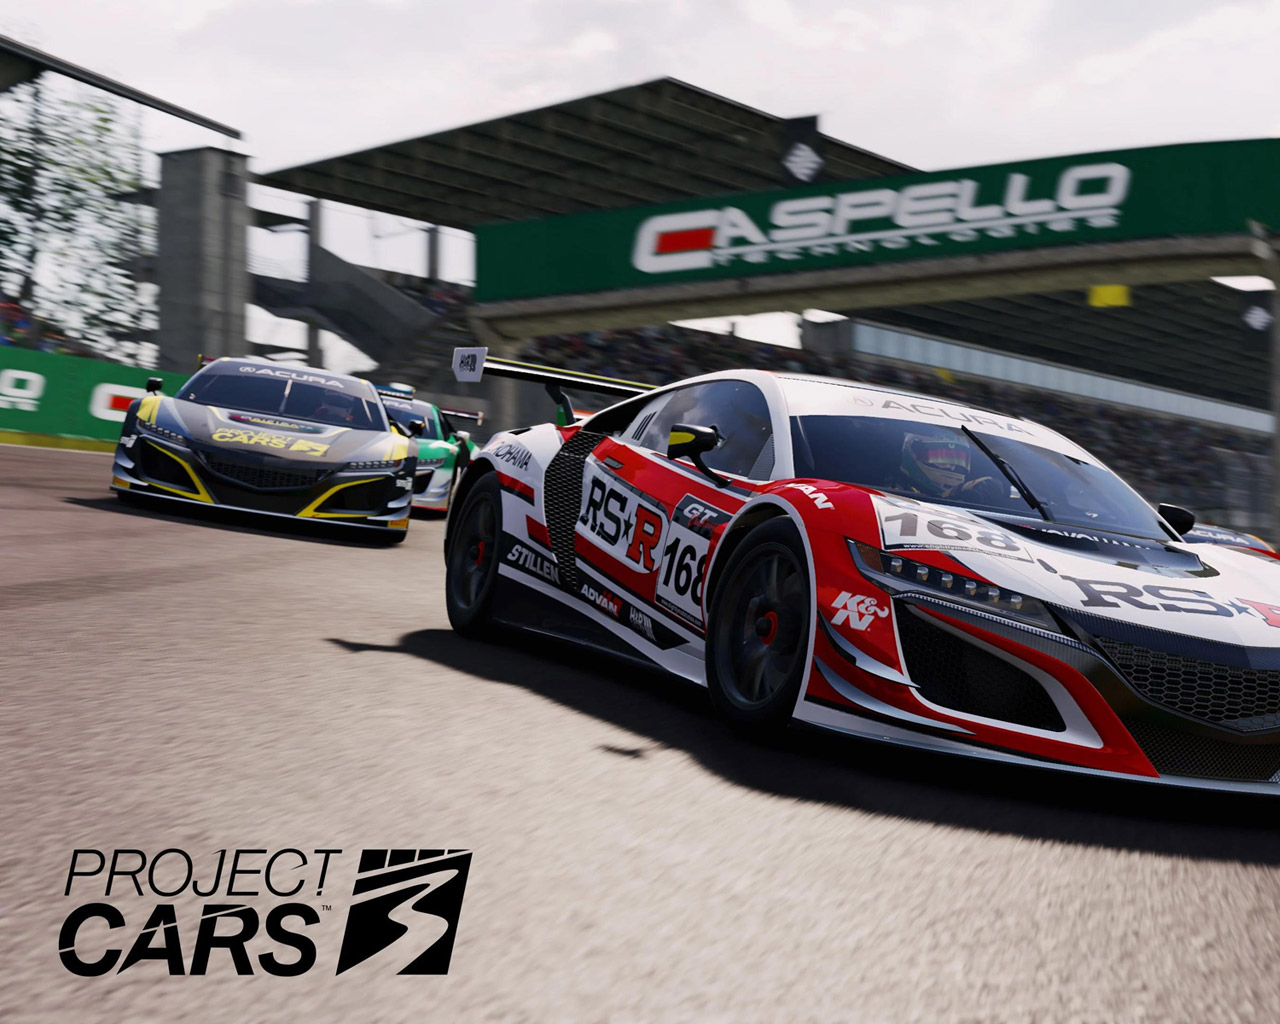 Free Project Cars 3 Wallpaper in 1280x1024